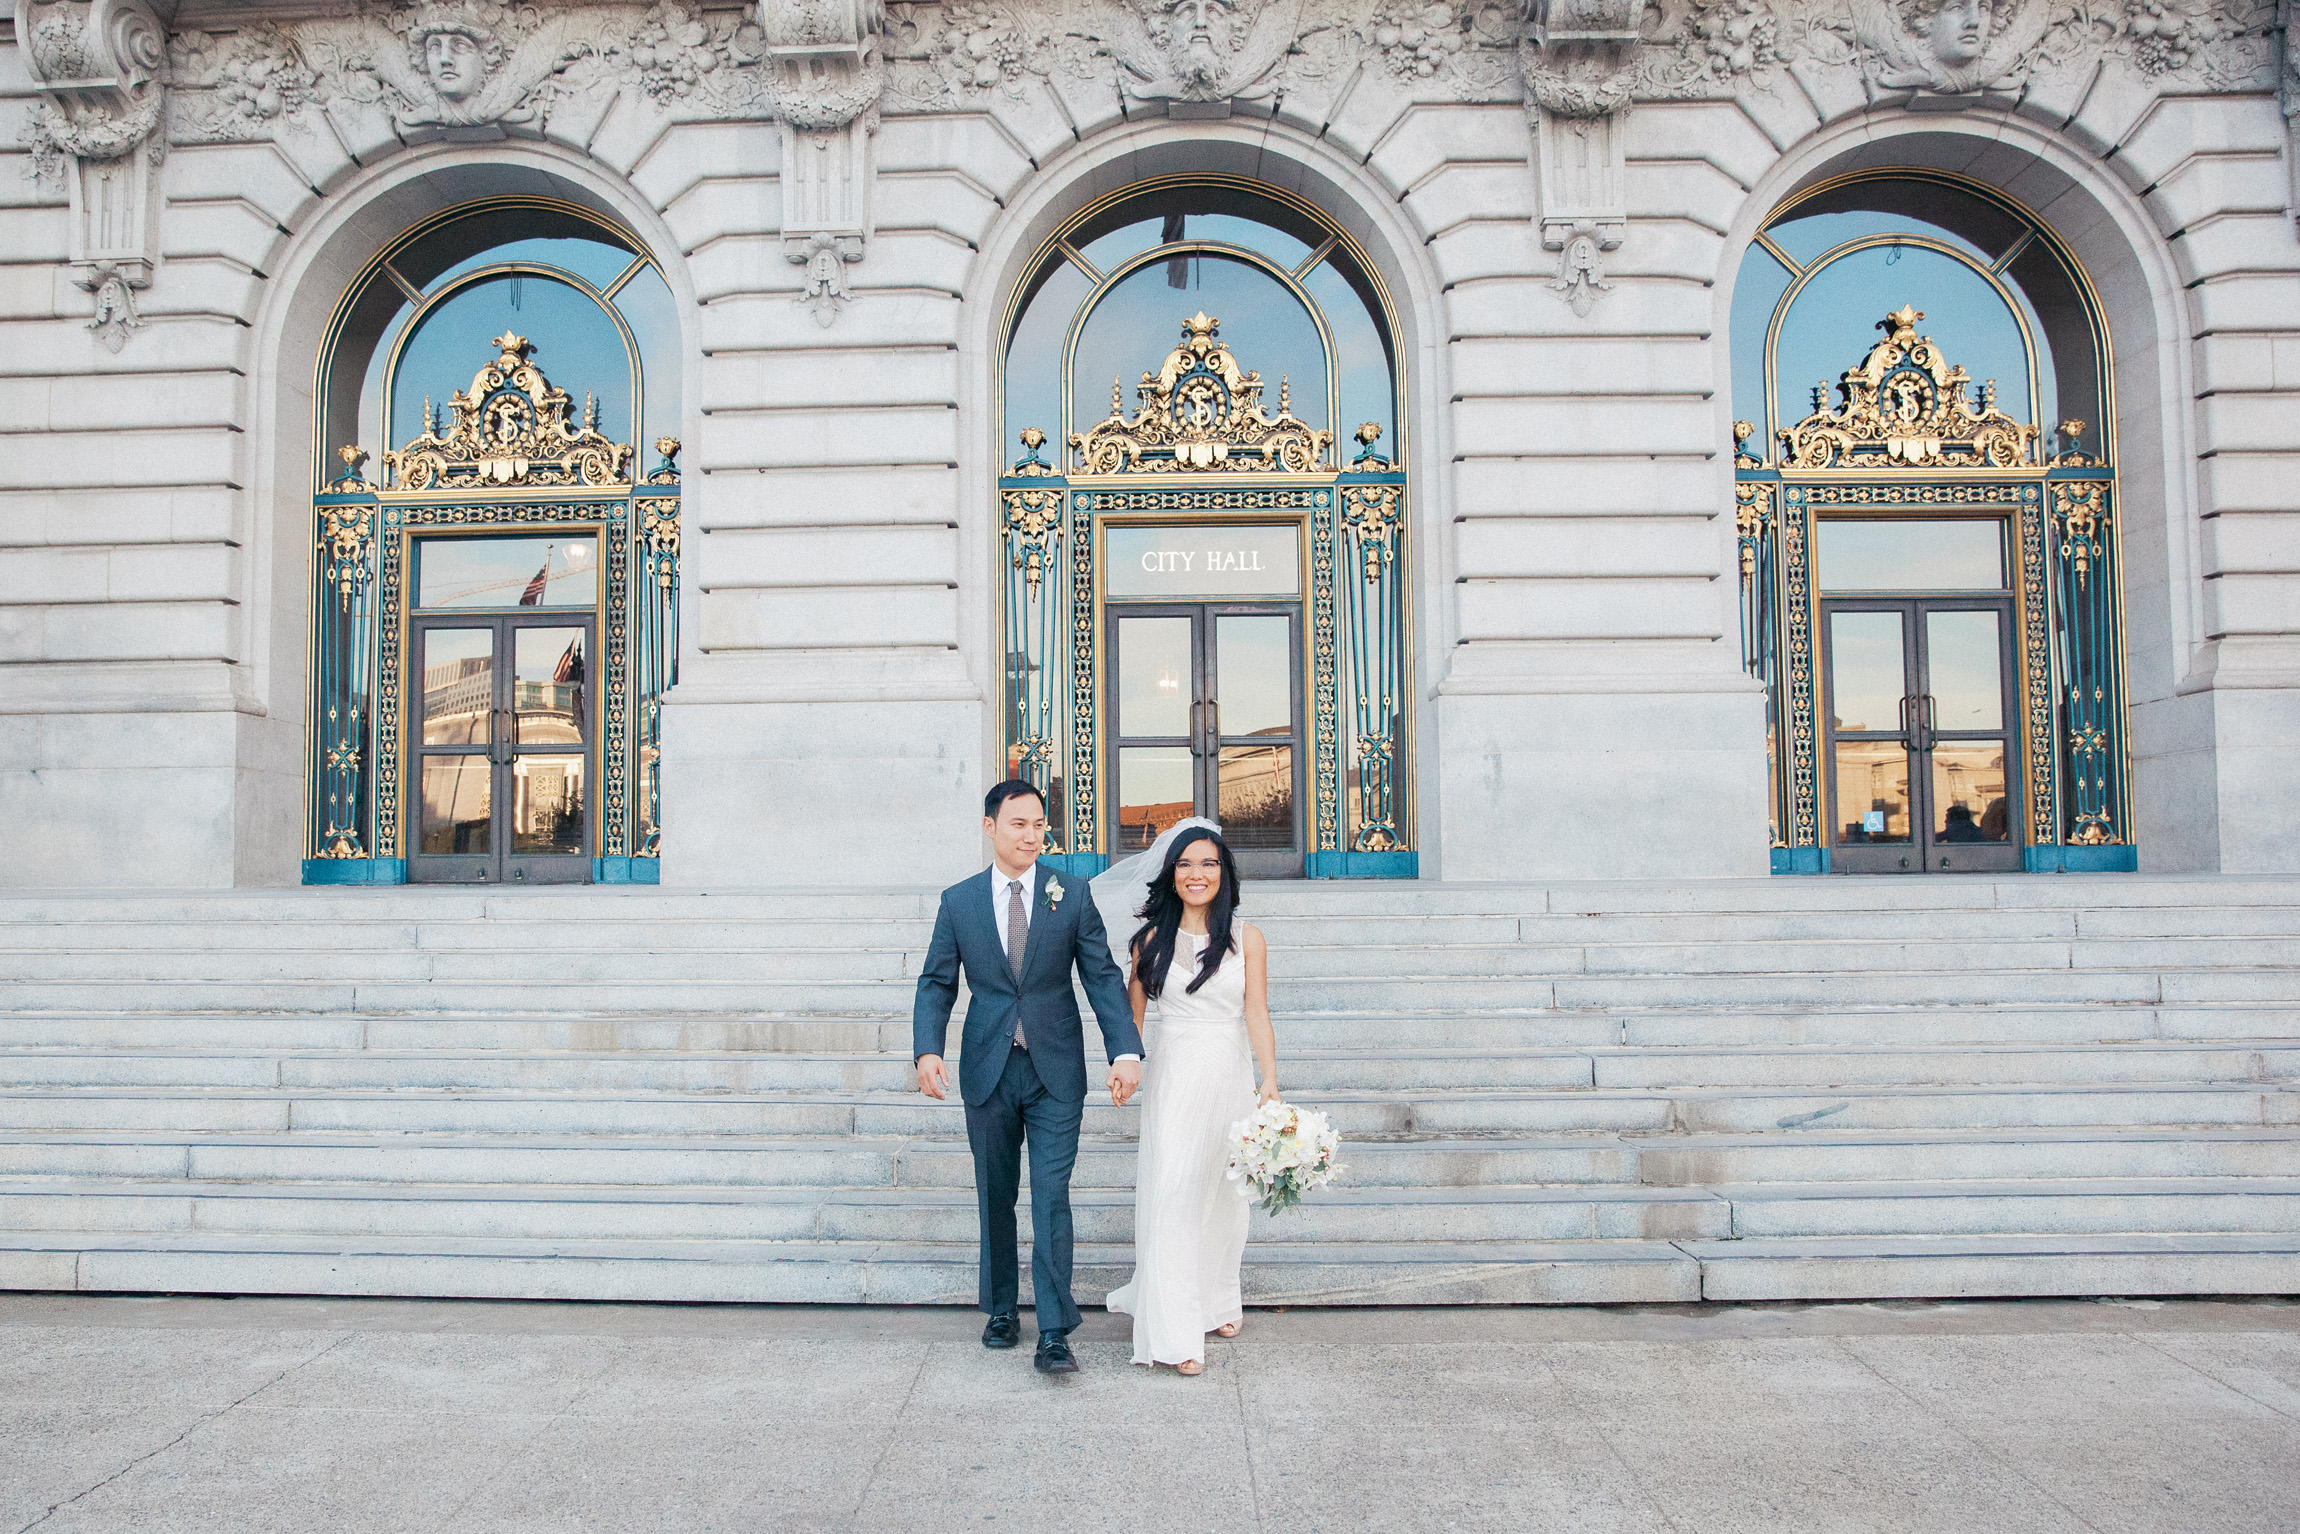 022_janaeshieldsphotography_sanfrancisco_cityhall_weddings.jpg